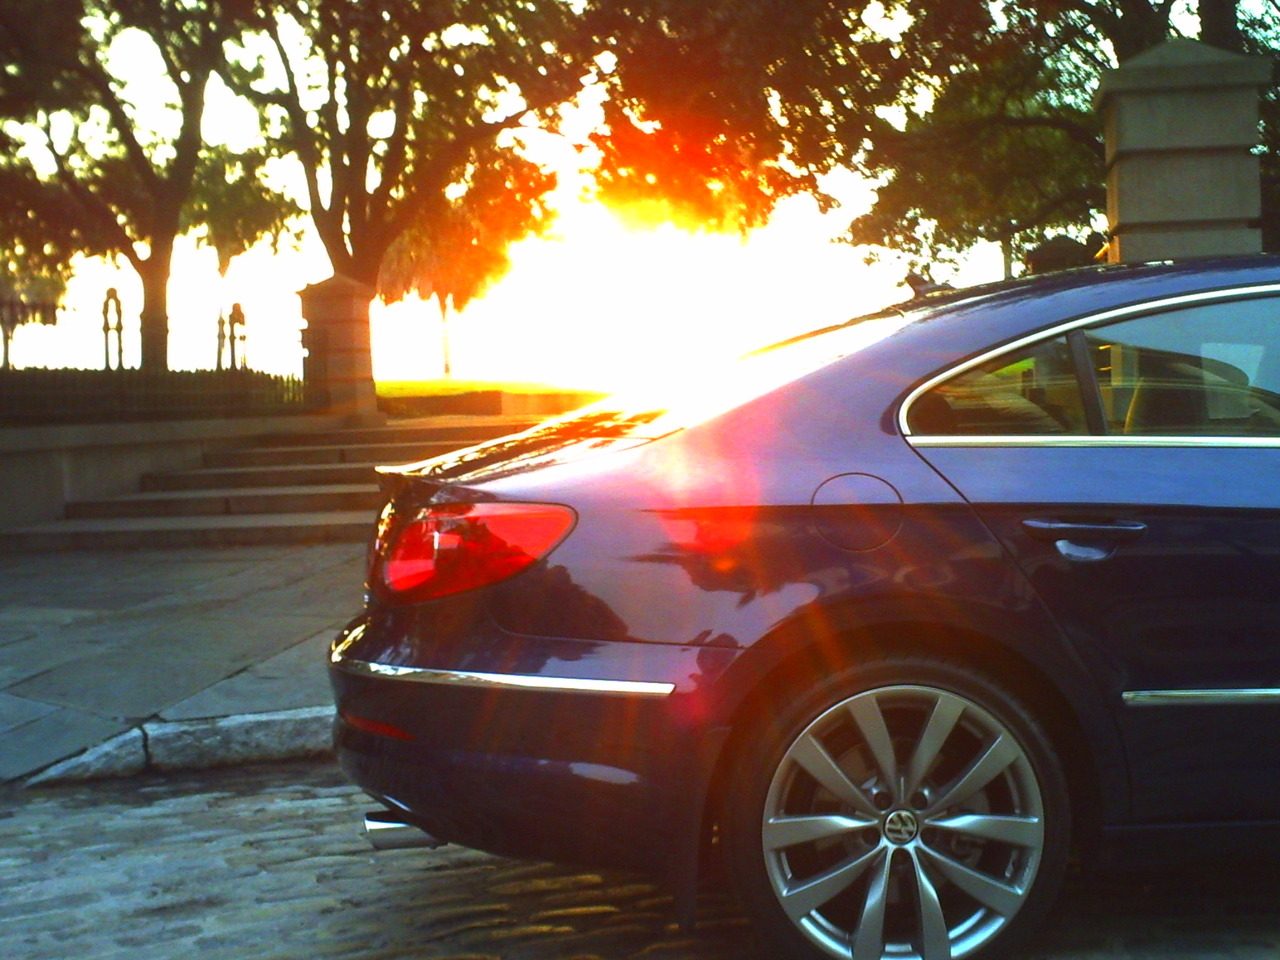 The 2011 Passat CC 4MOTION in Charleston, SC for Das Auto Magazine.